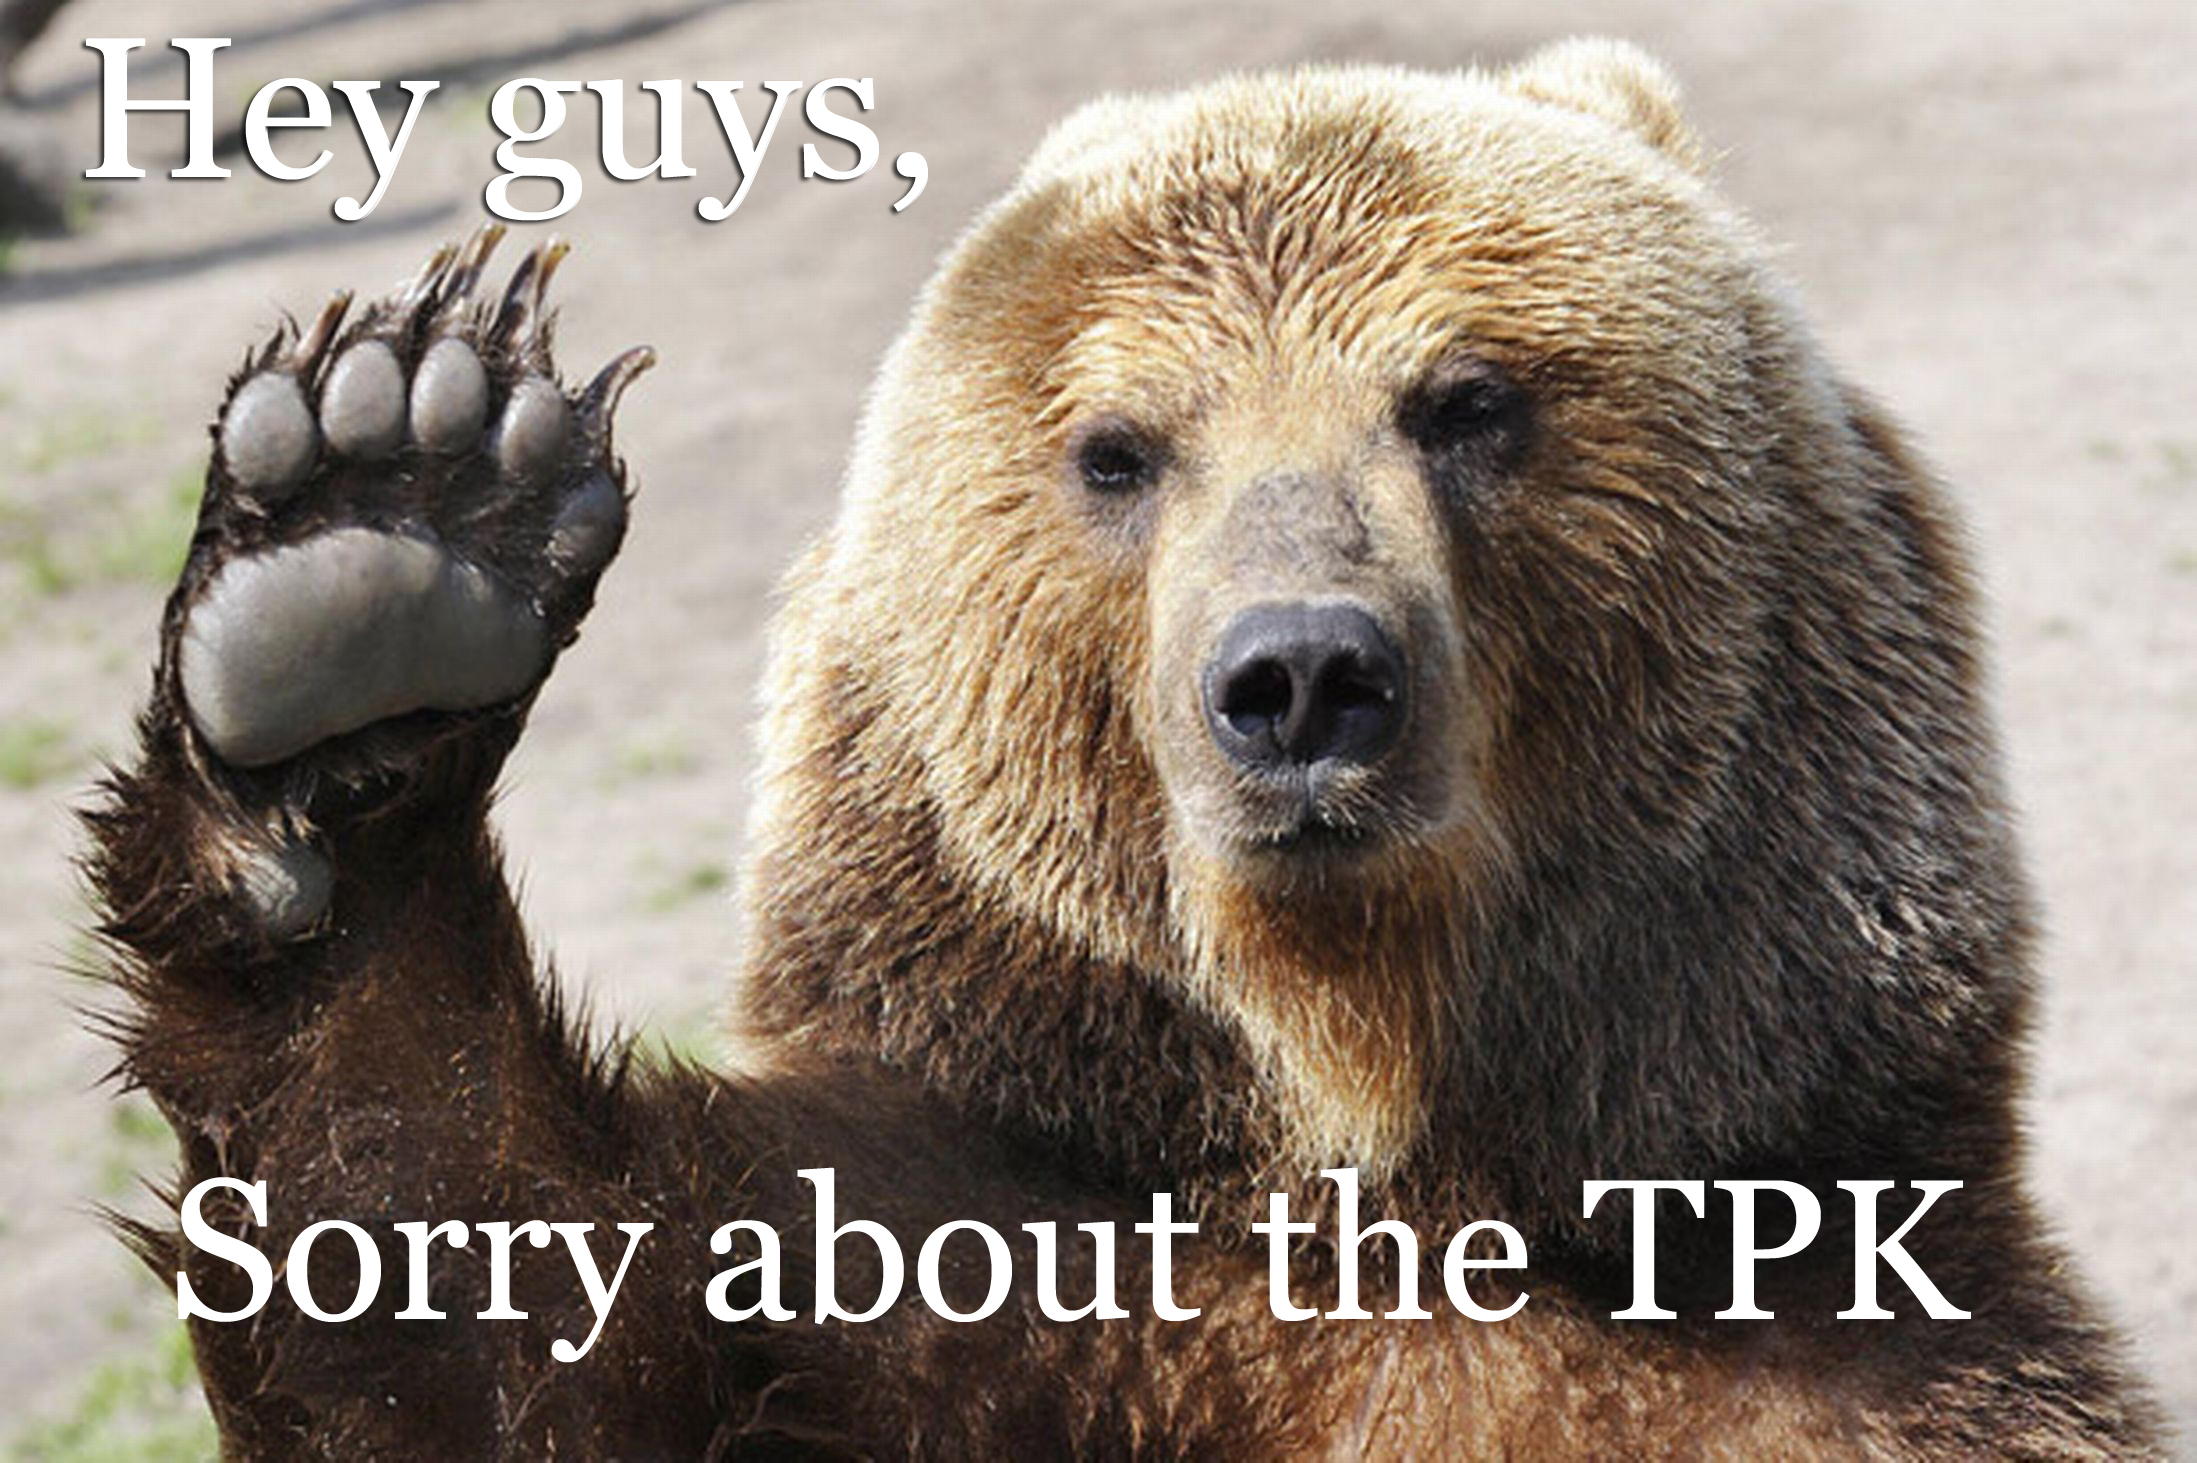 tpk_bear2_copy.jpg